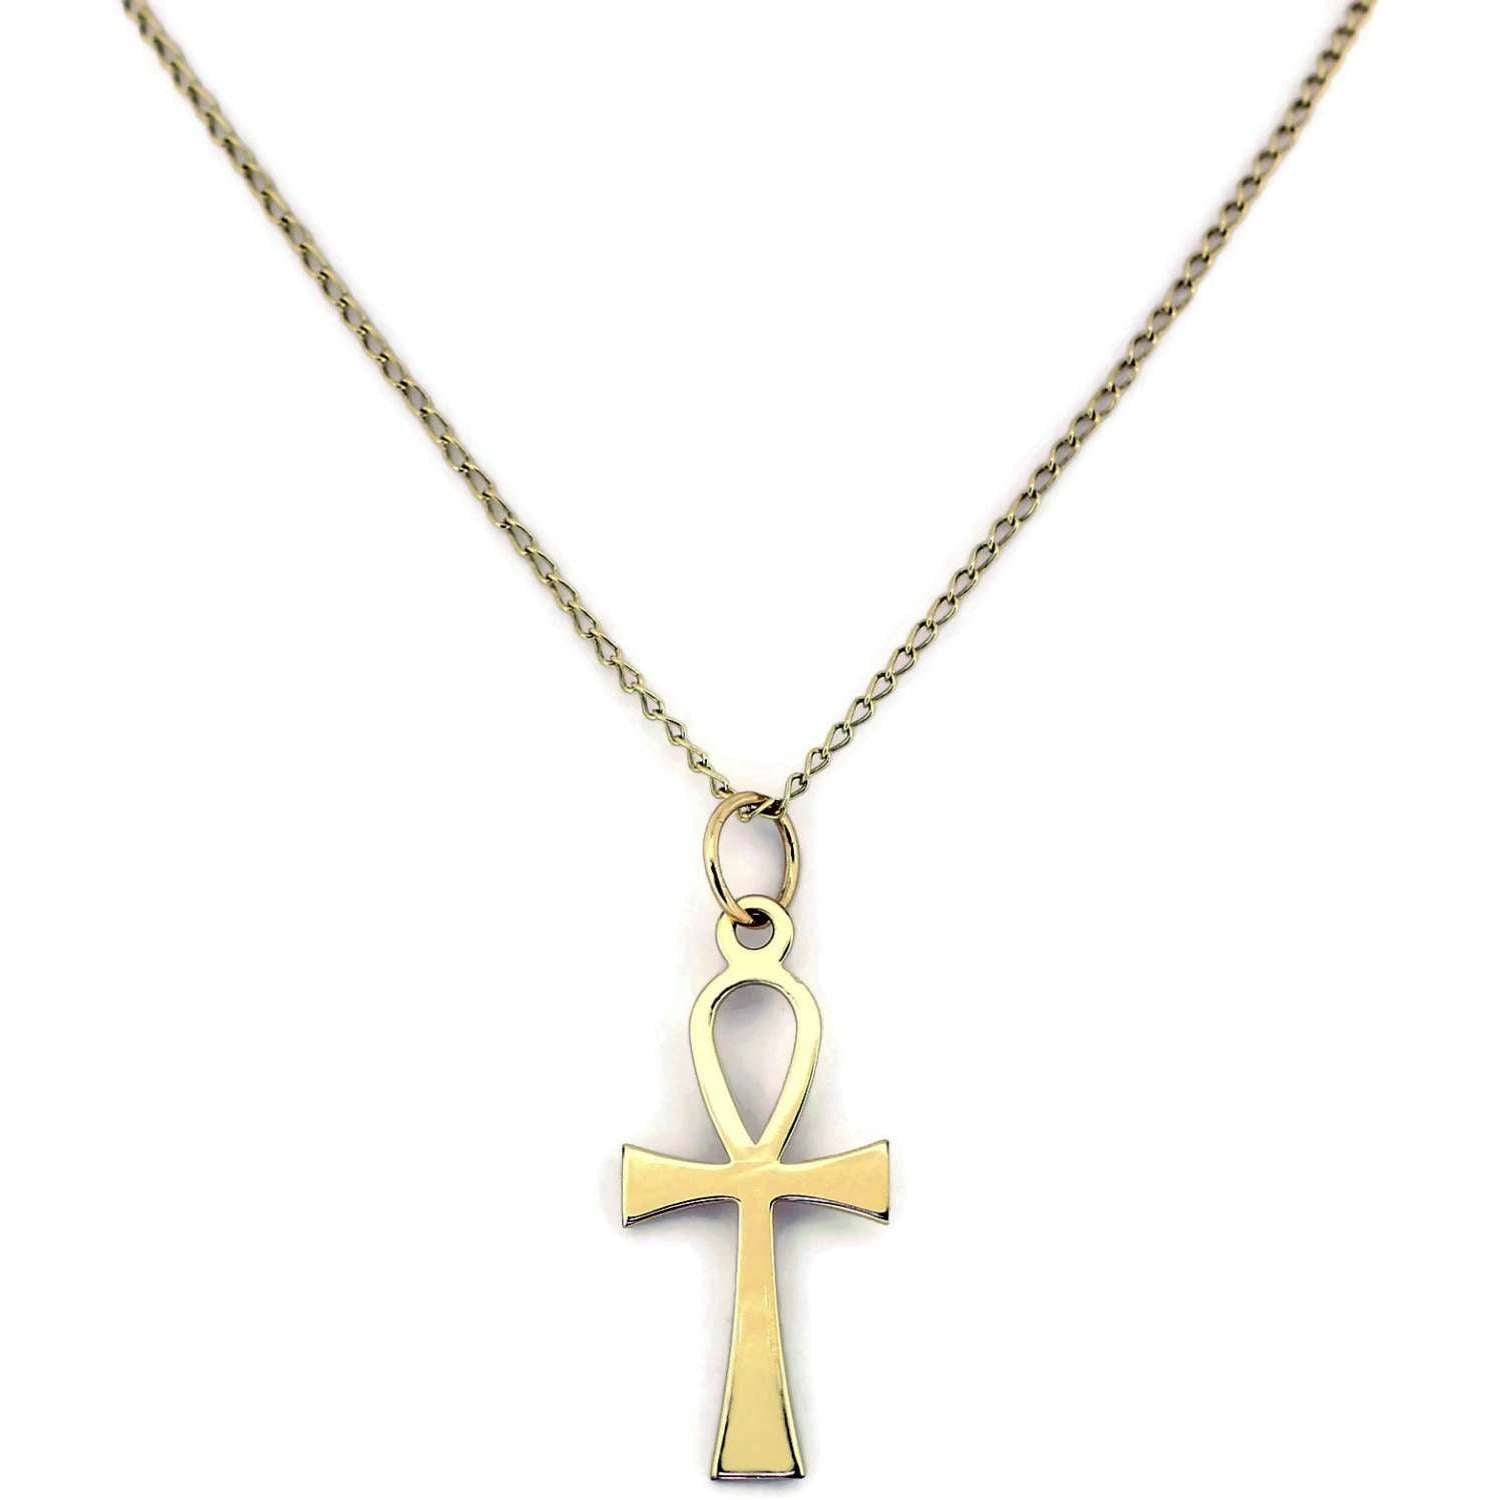 GOLD, 9ct, ANKH CROSS AND CHAIN.